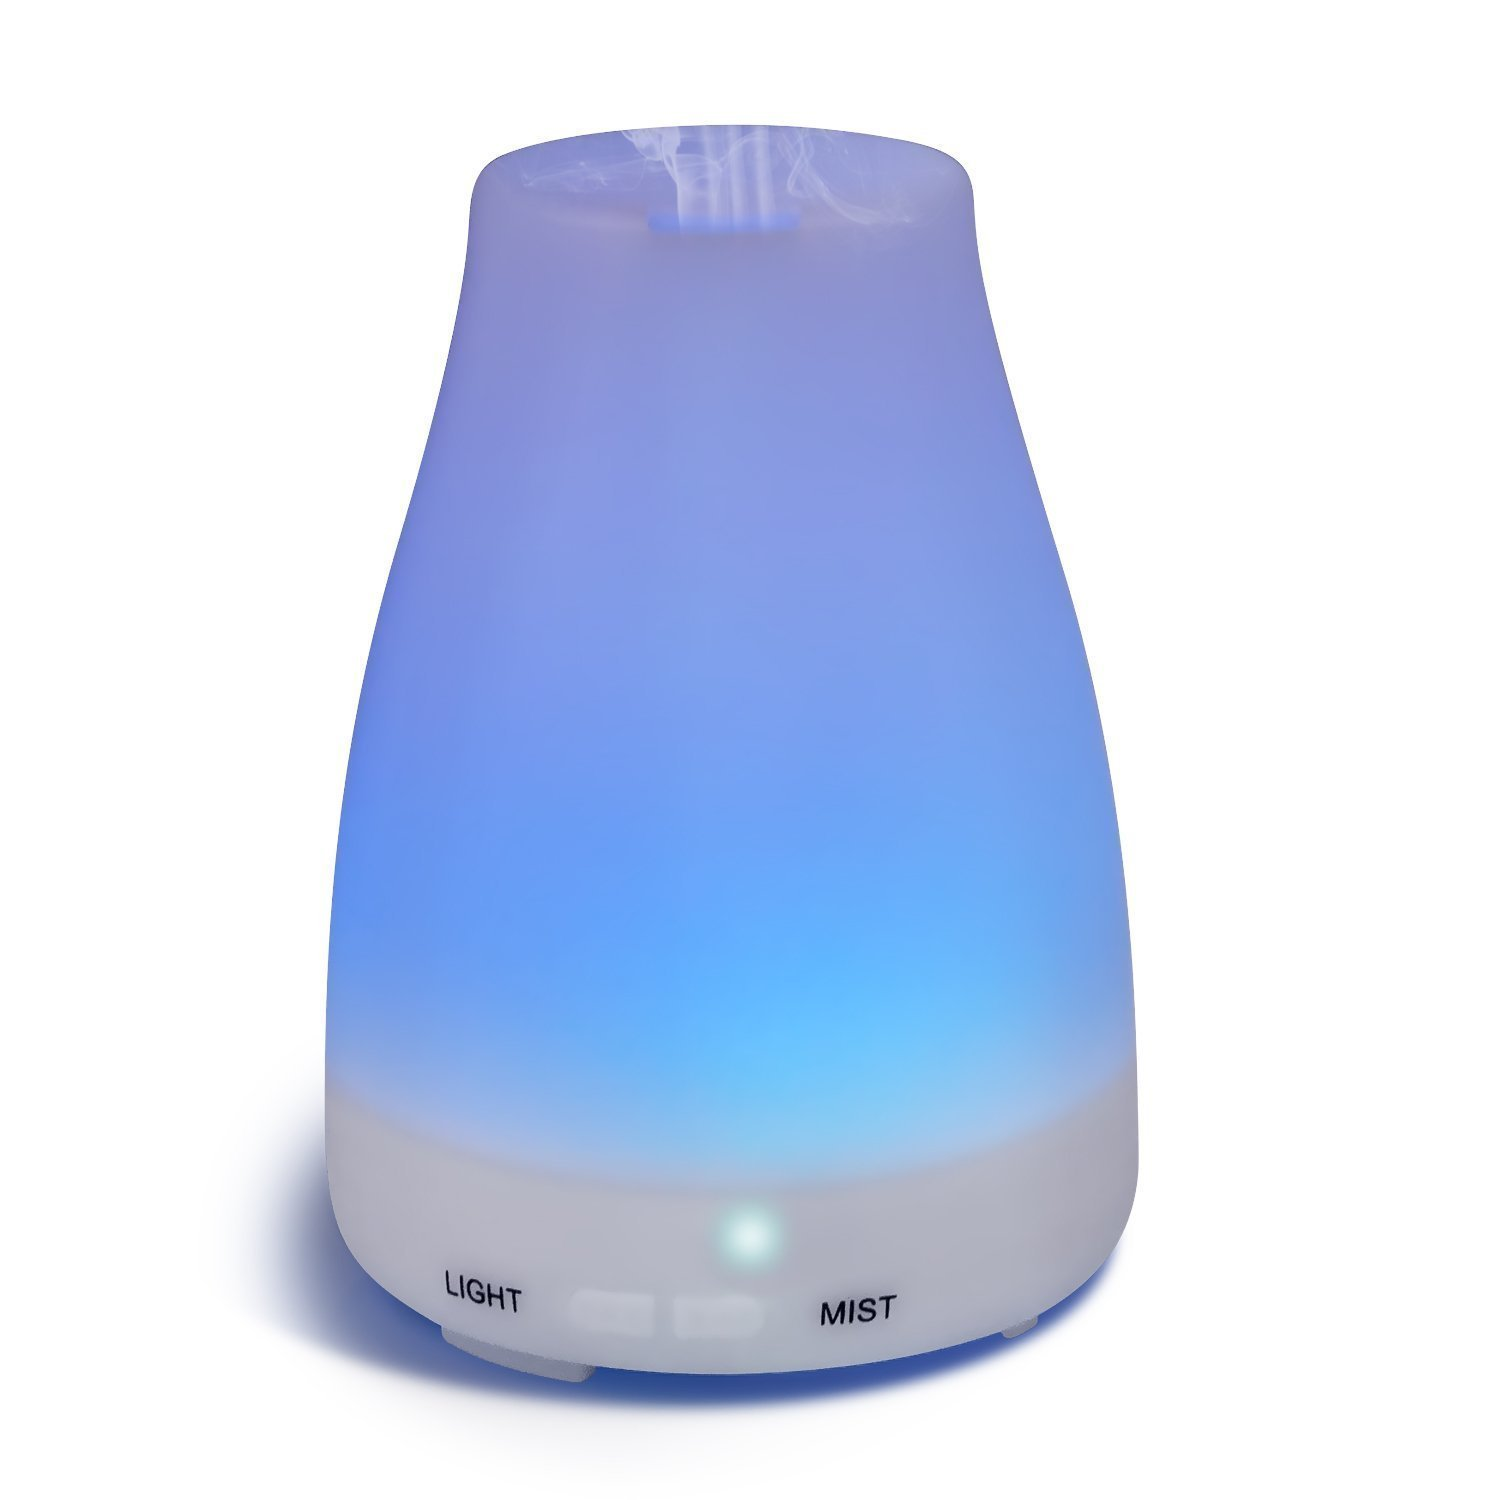 Diffusers,Homeweeks 100ml Colorful Essential Oil Diffuser with Adjustable Mist Mode,Auto Off Aroma Diffuser for Bedroom/Office/Trip by Homeweeks